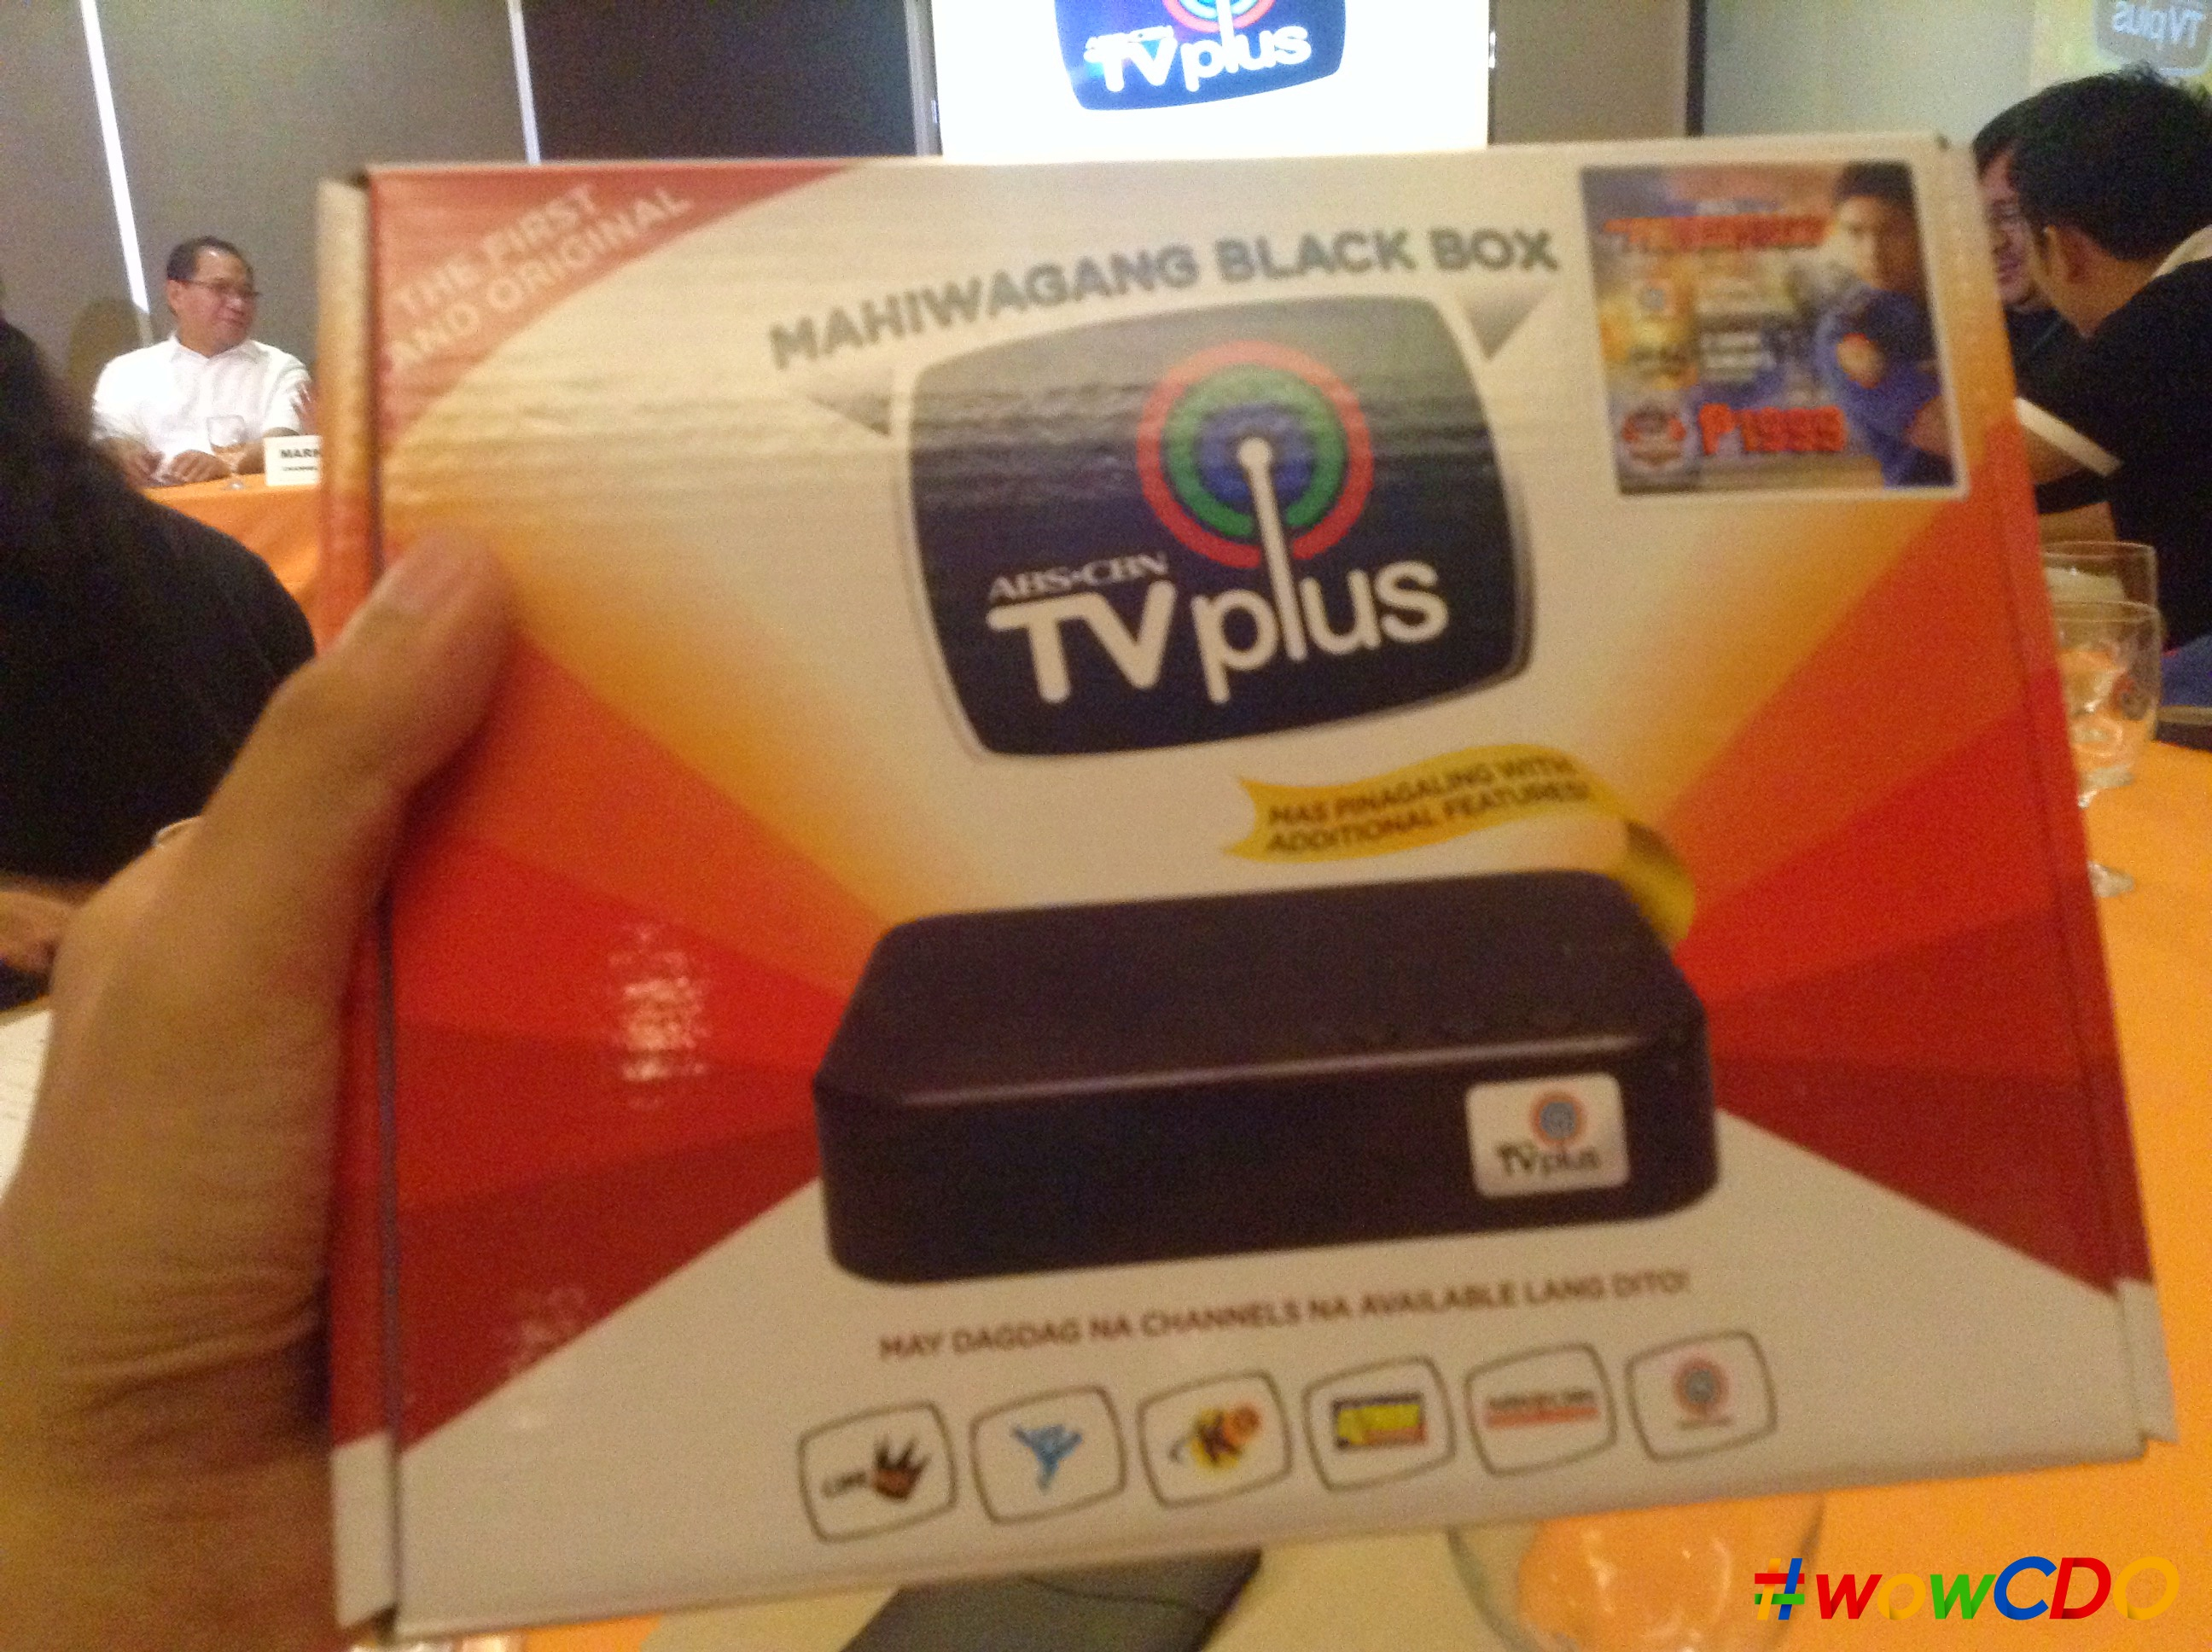 Experience Digital Tv With Abs Cbn Tvplus The Mahiwagang Black